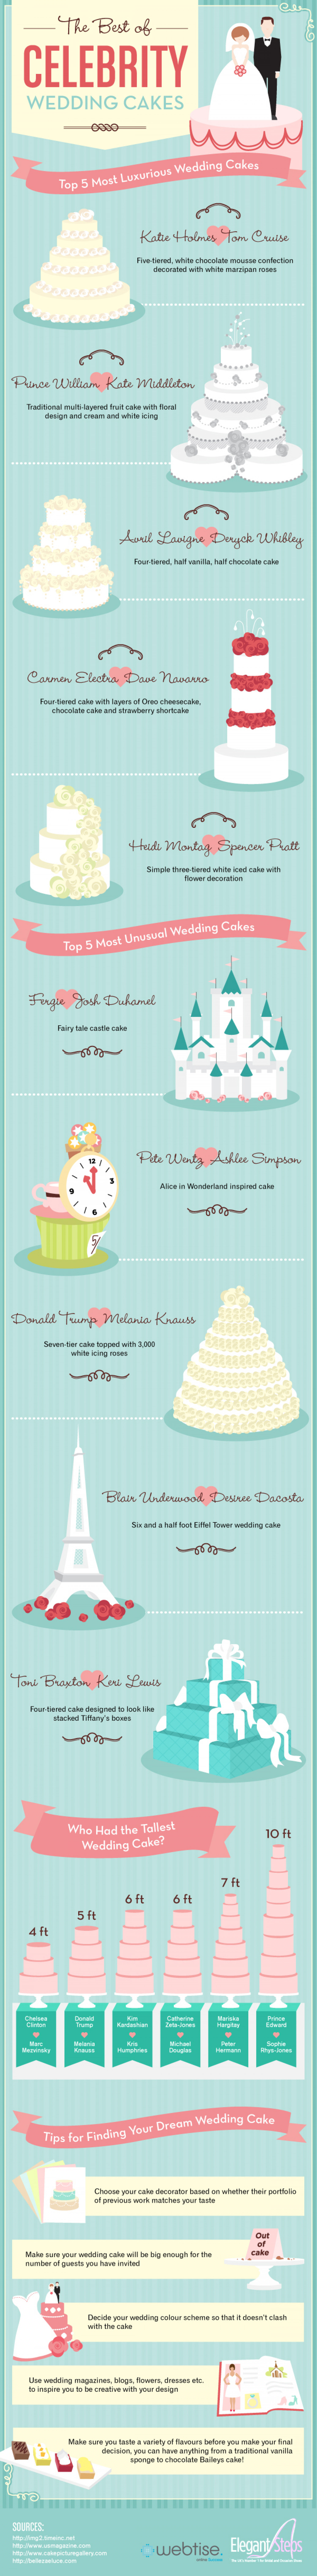 The Best of Celebrity Wedding Cakes Infographic